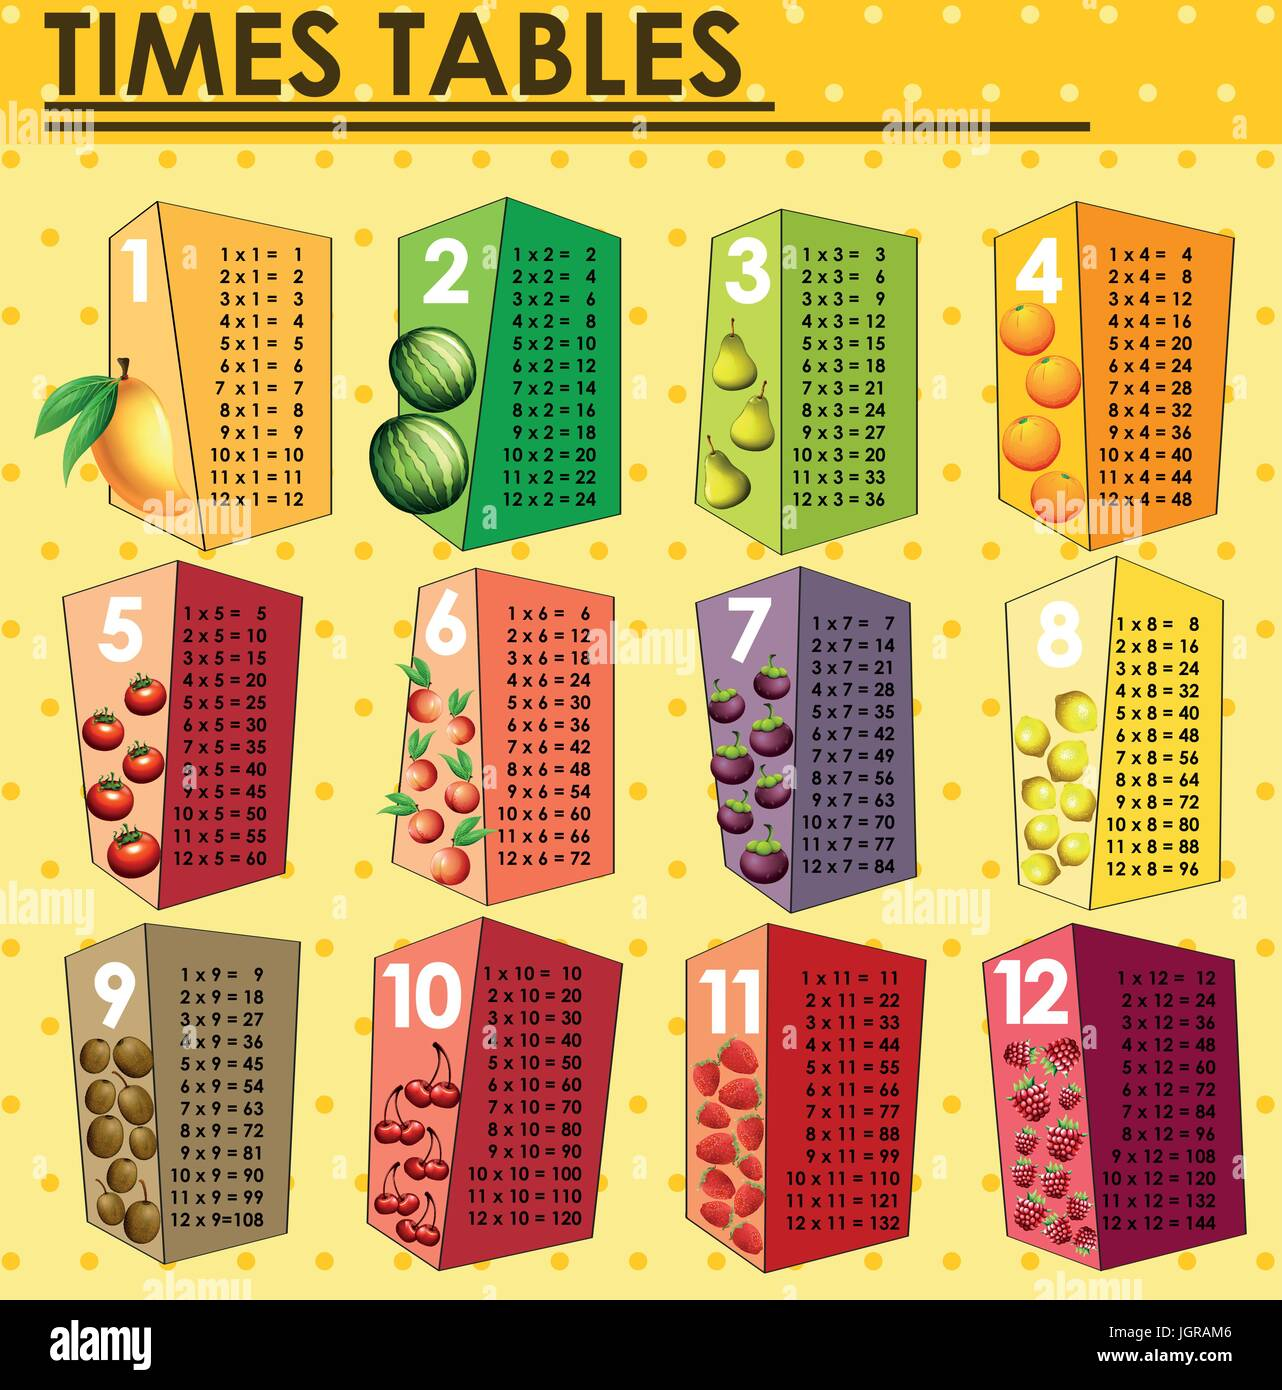 Times tables chart with fresh fruits illustration - Stock Vector